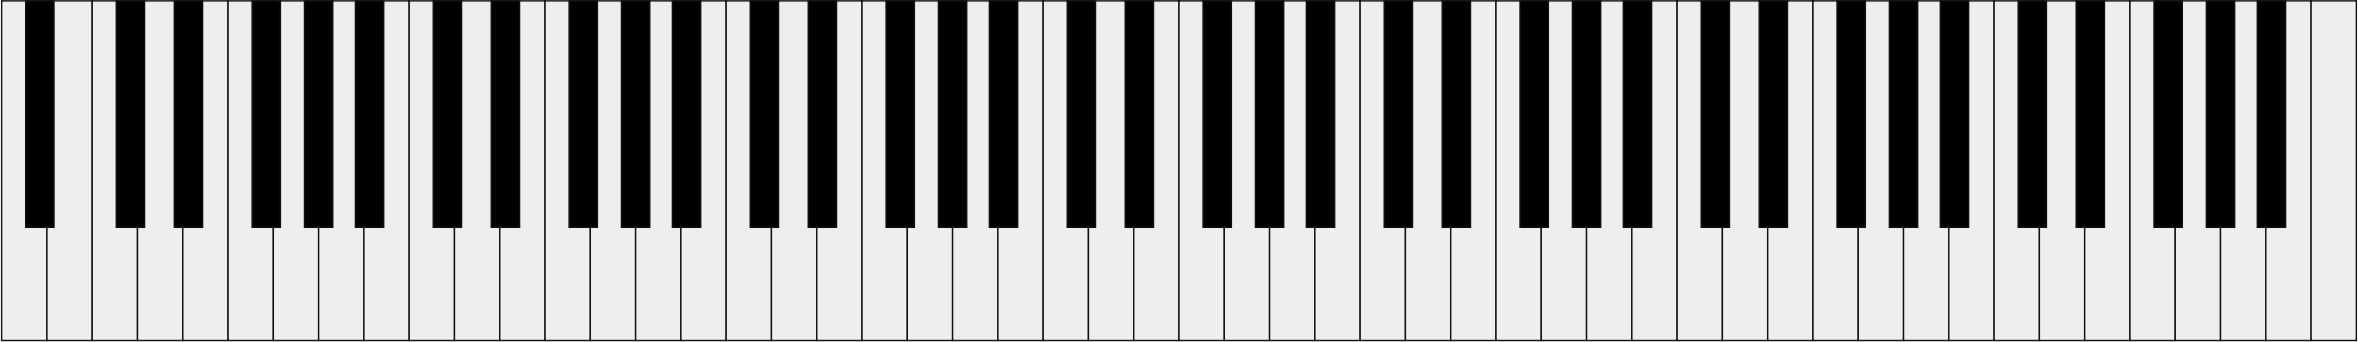 svg black and white library The of a standard. Music keyboard clipart